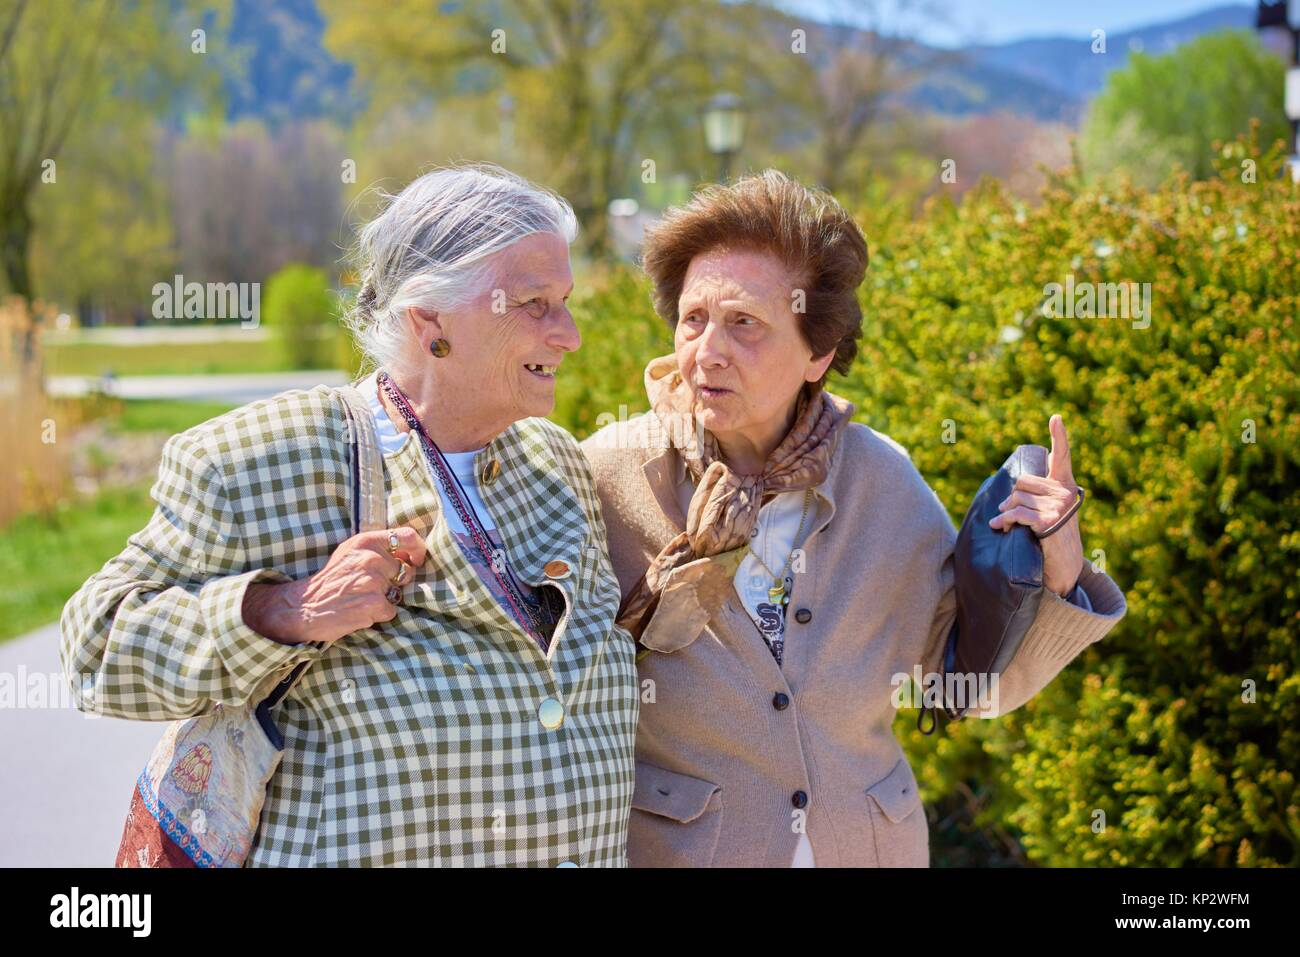 Happy old senior women telling stories each other in park - Stock Image